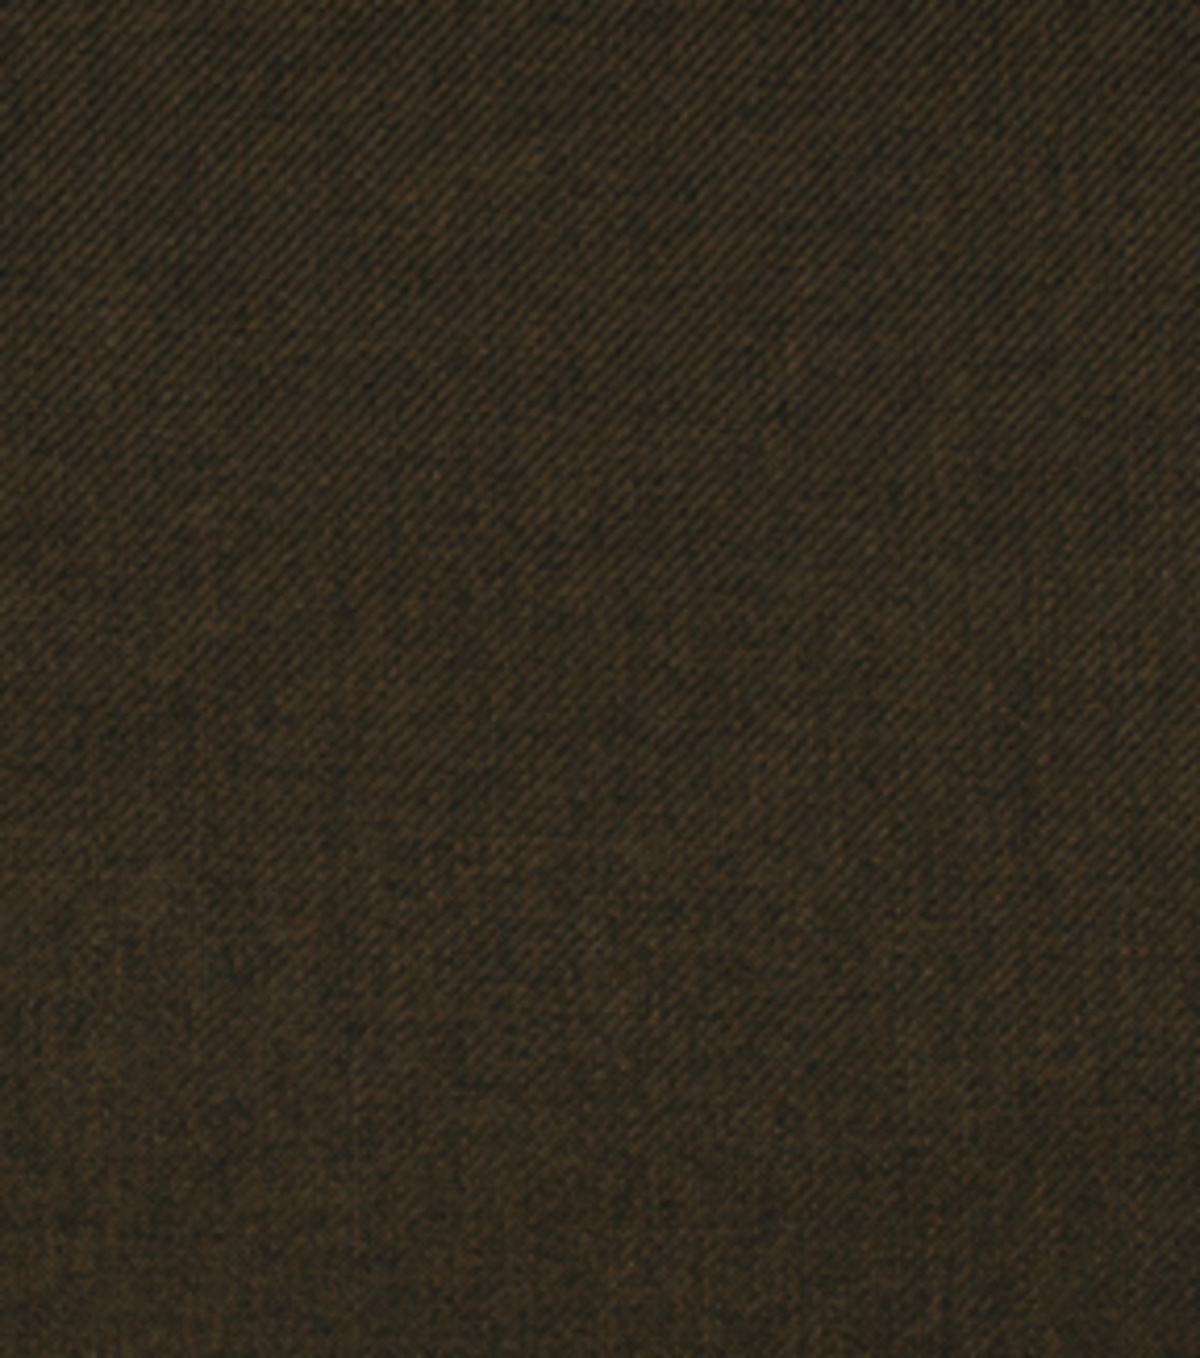 Home Decor 8\u0022x8\u0022 Fabric Swatch-Eaton Square Heston Espresso